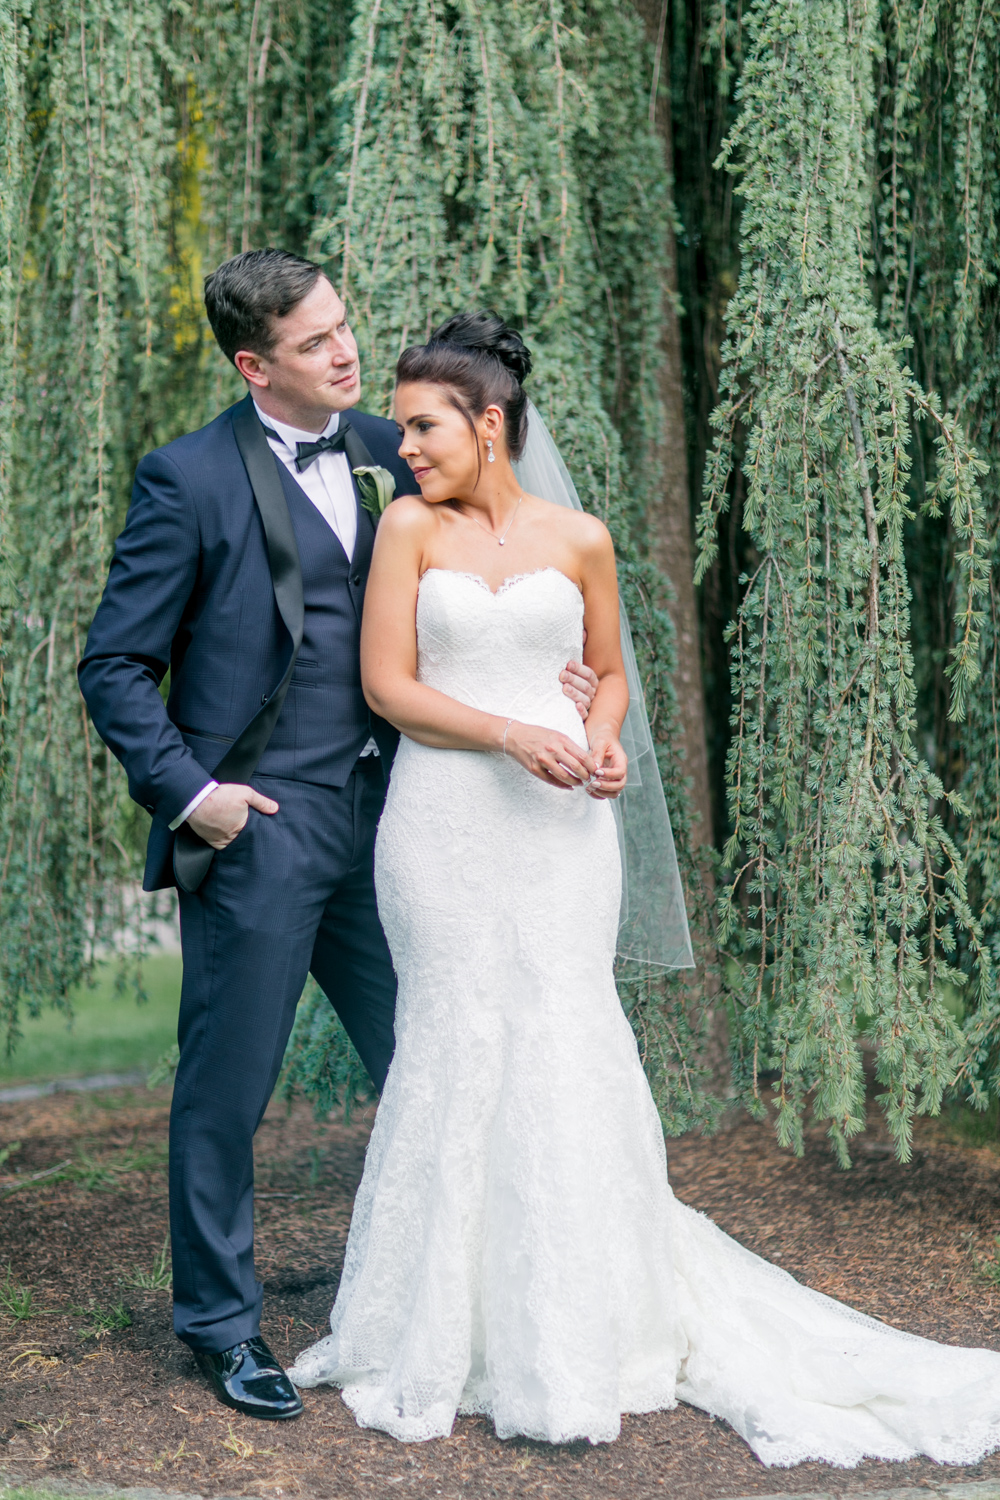 full length of brides open shoulder mermaid wedding dress and navy wedding tux with a willow tree in the background at slieve russell hotel